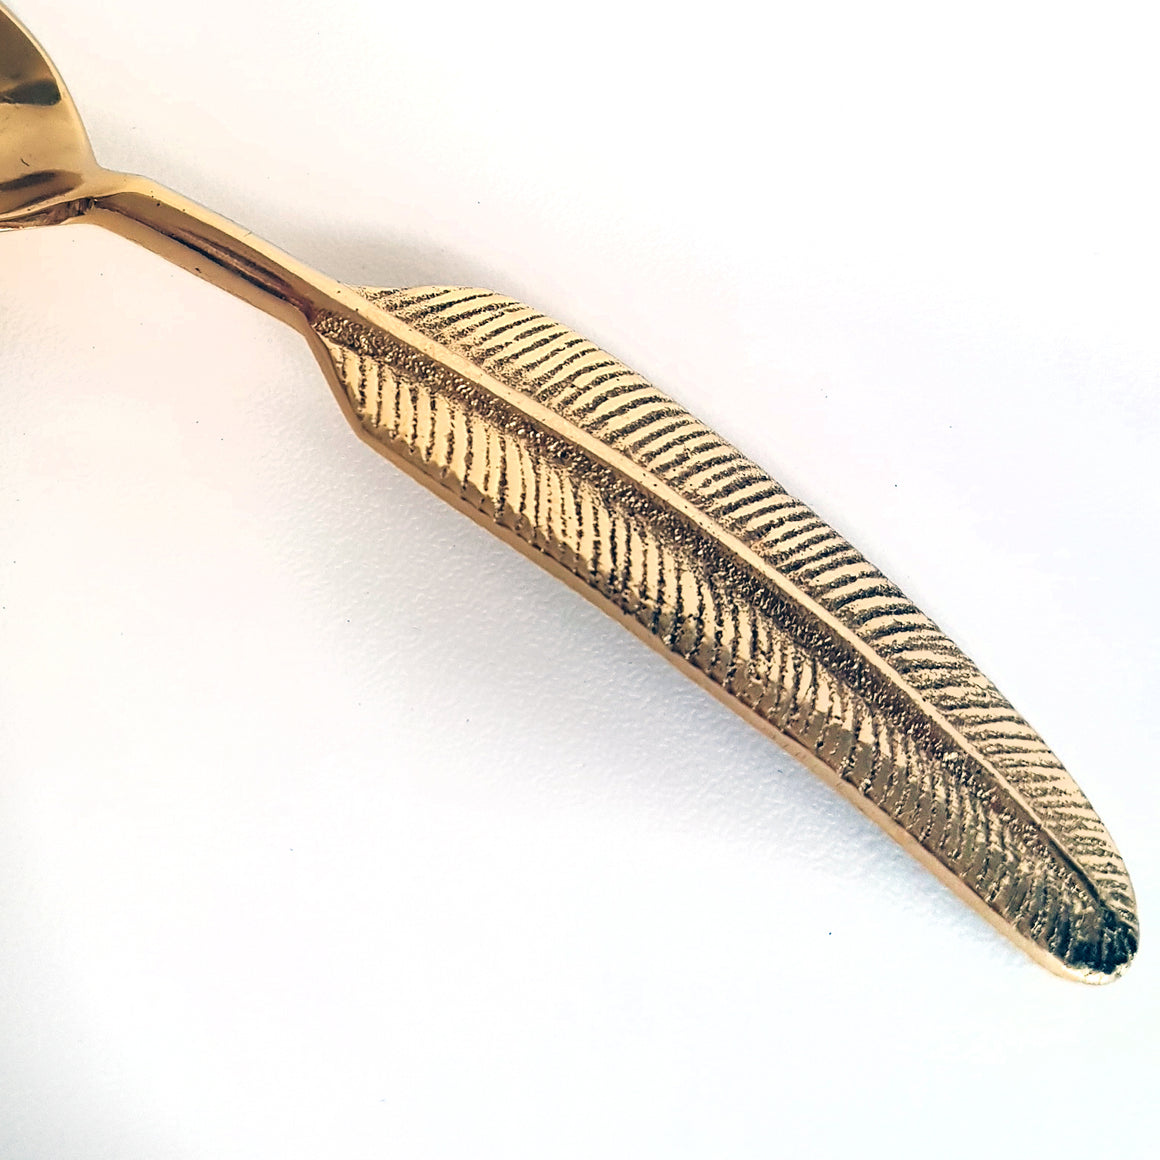 Brass leaf spoon